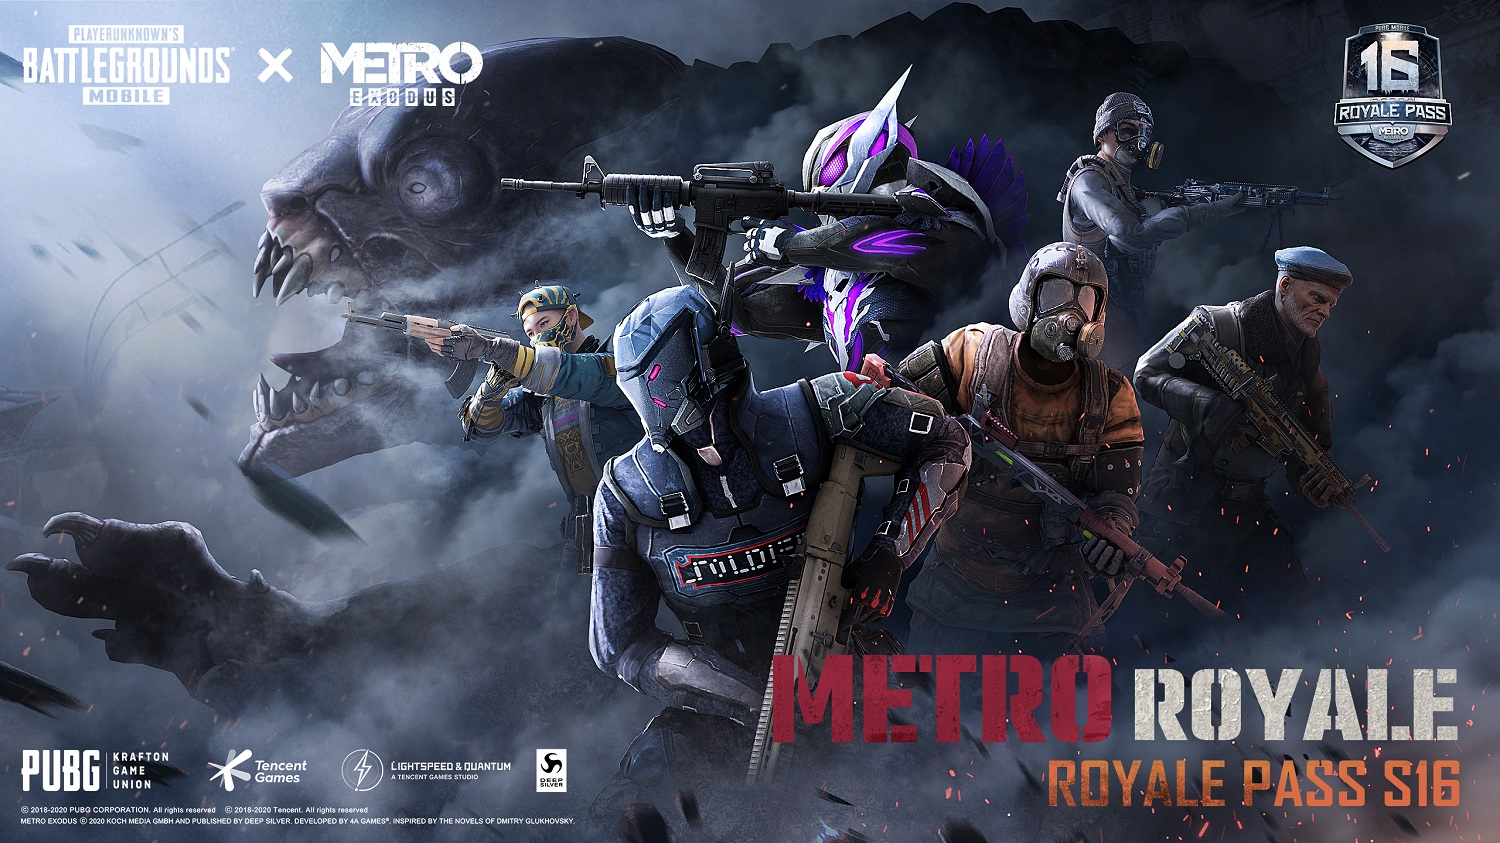 PUBG Mobile Teams with Metro Exodus for First Ever Co-branded Royale Pass Season 16